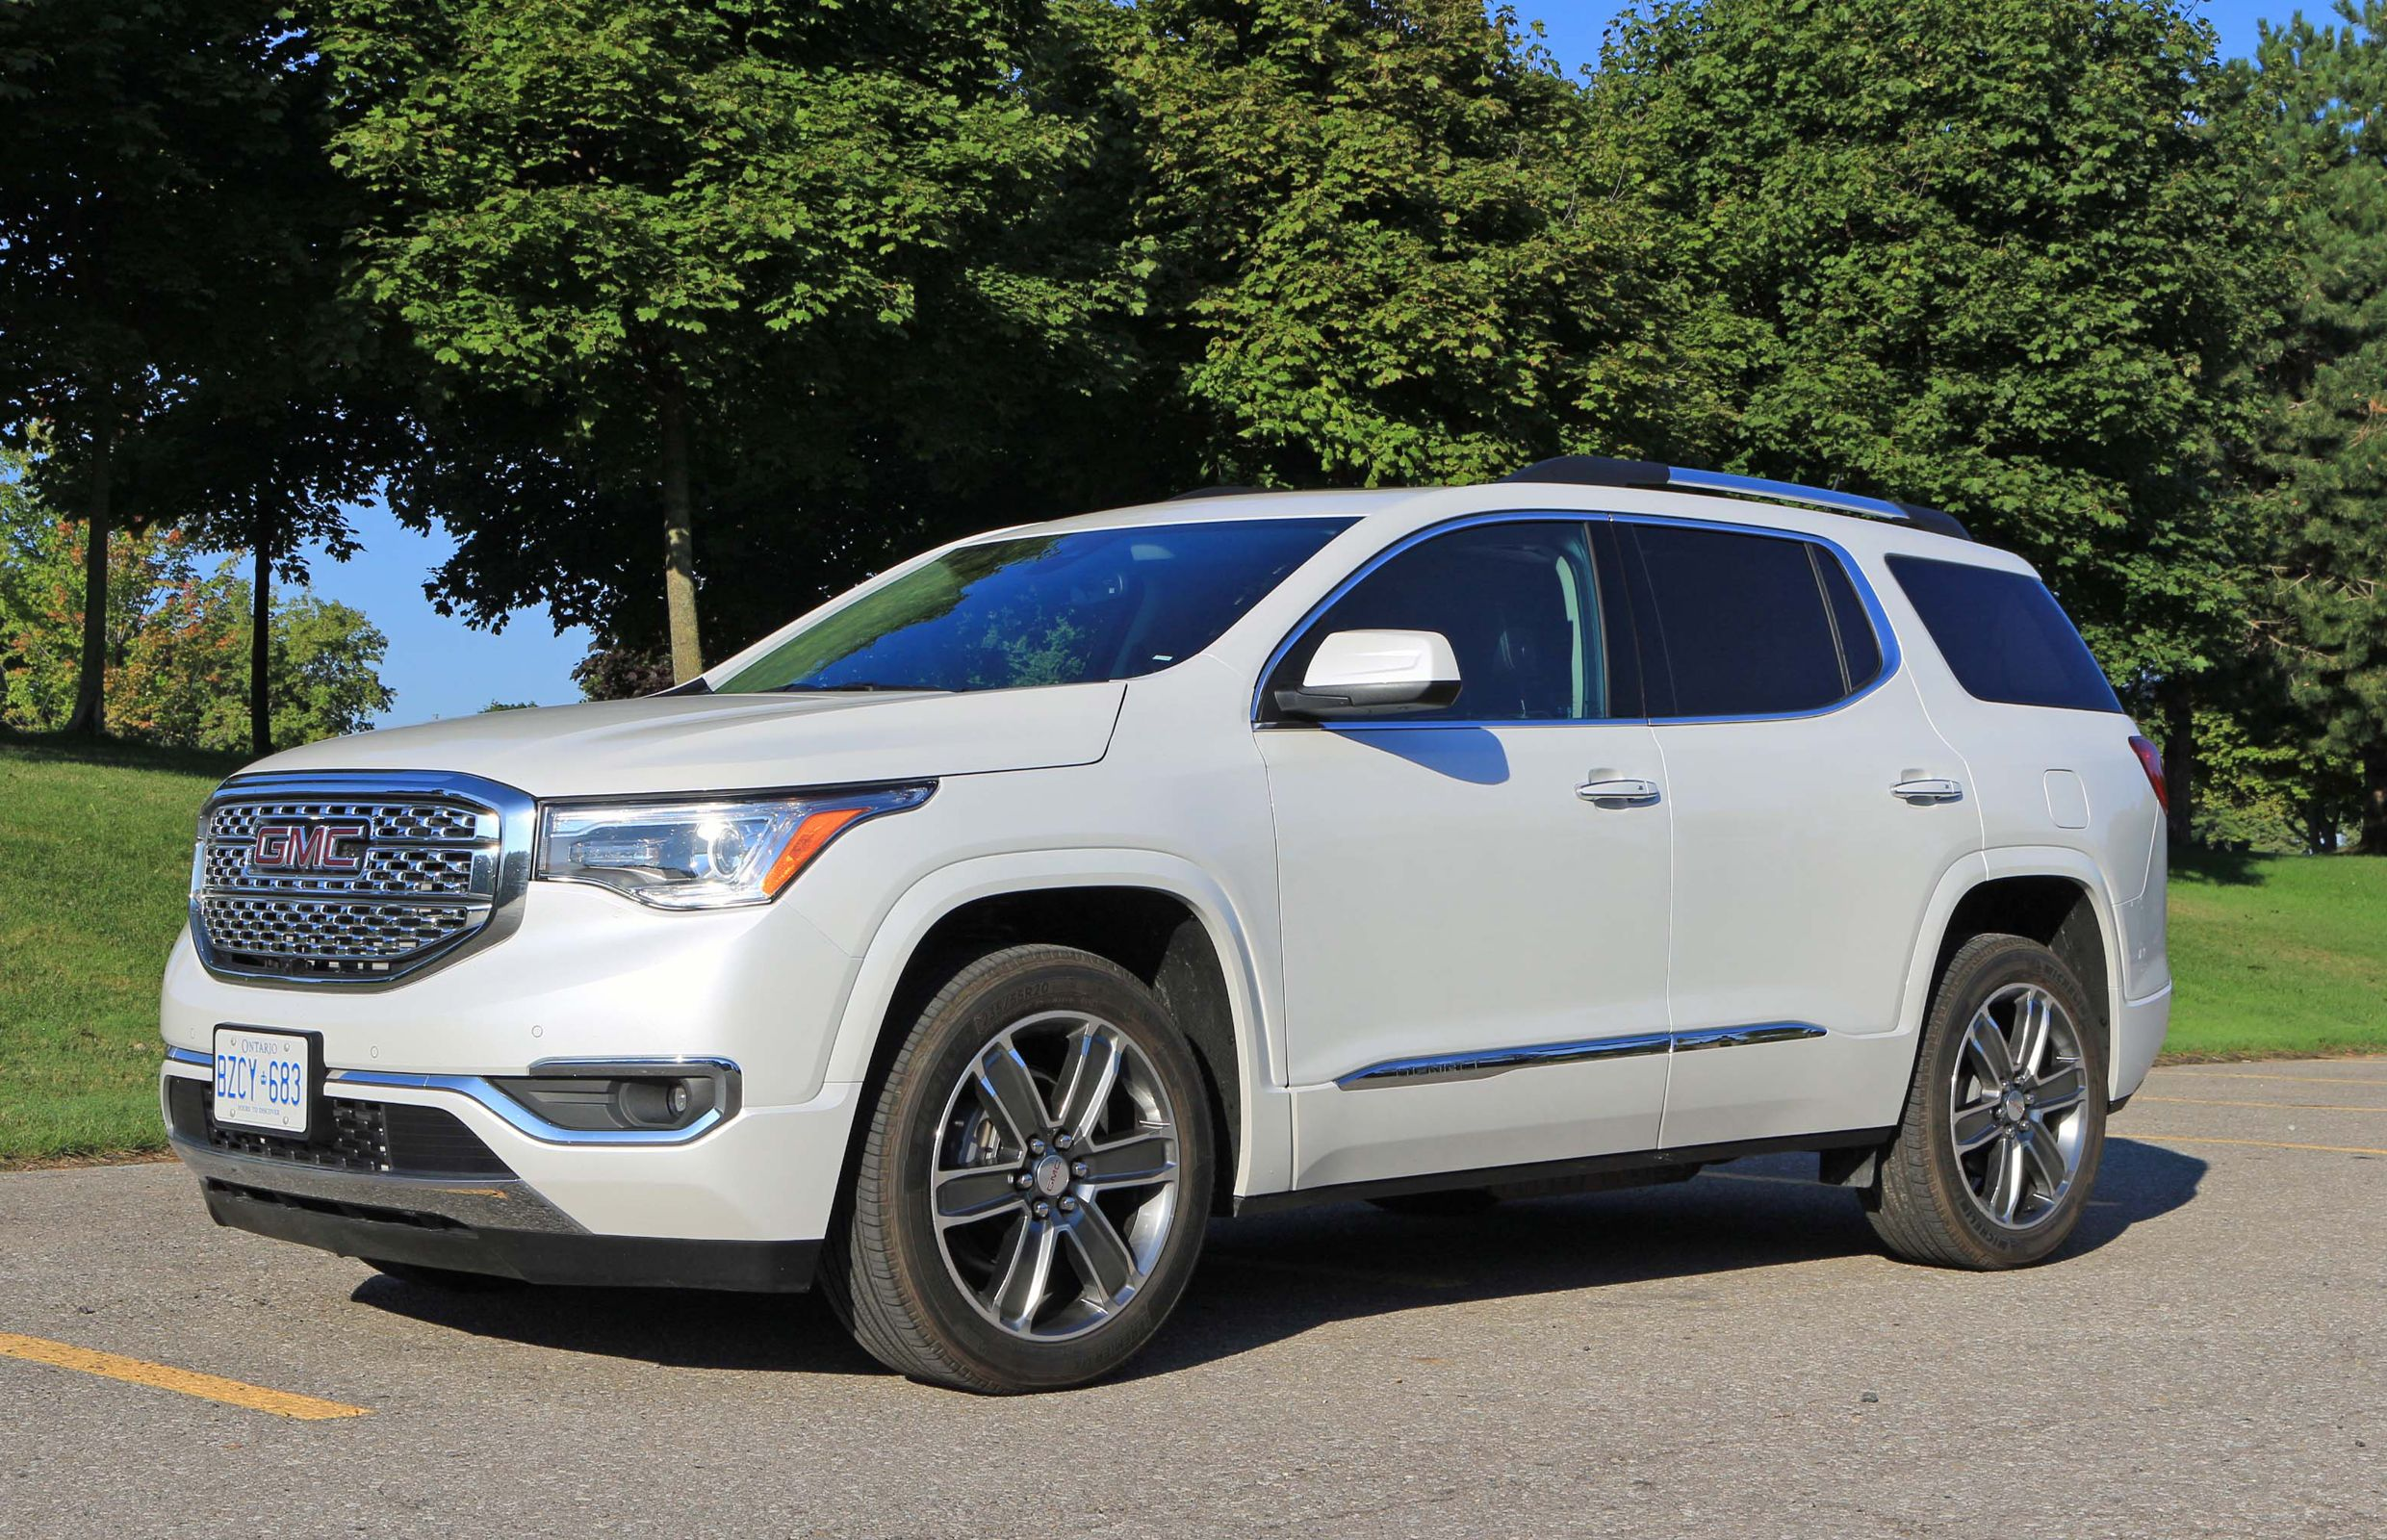 Suv Review 2017 Gmc Acadia Denali In 2020 Acadia Denali Suv Reviews Gmc Acadia 2017